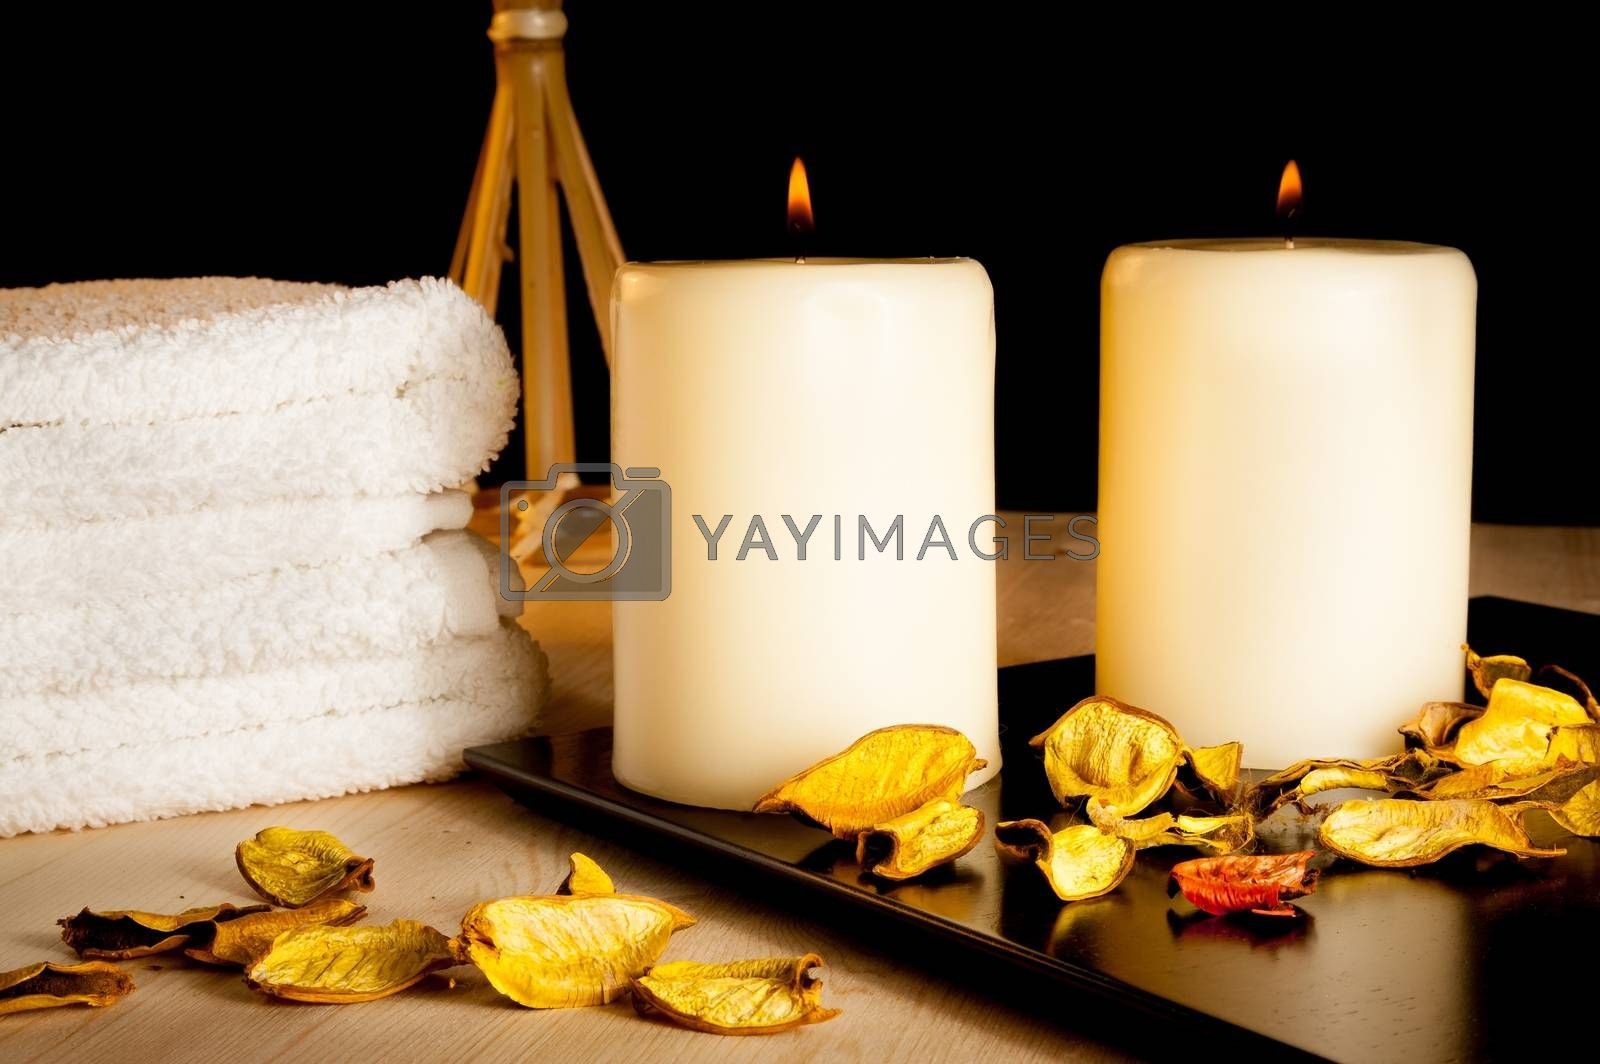 Spa massage border background with towel stacked, perfumed leaves and candles by donfiore